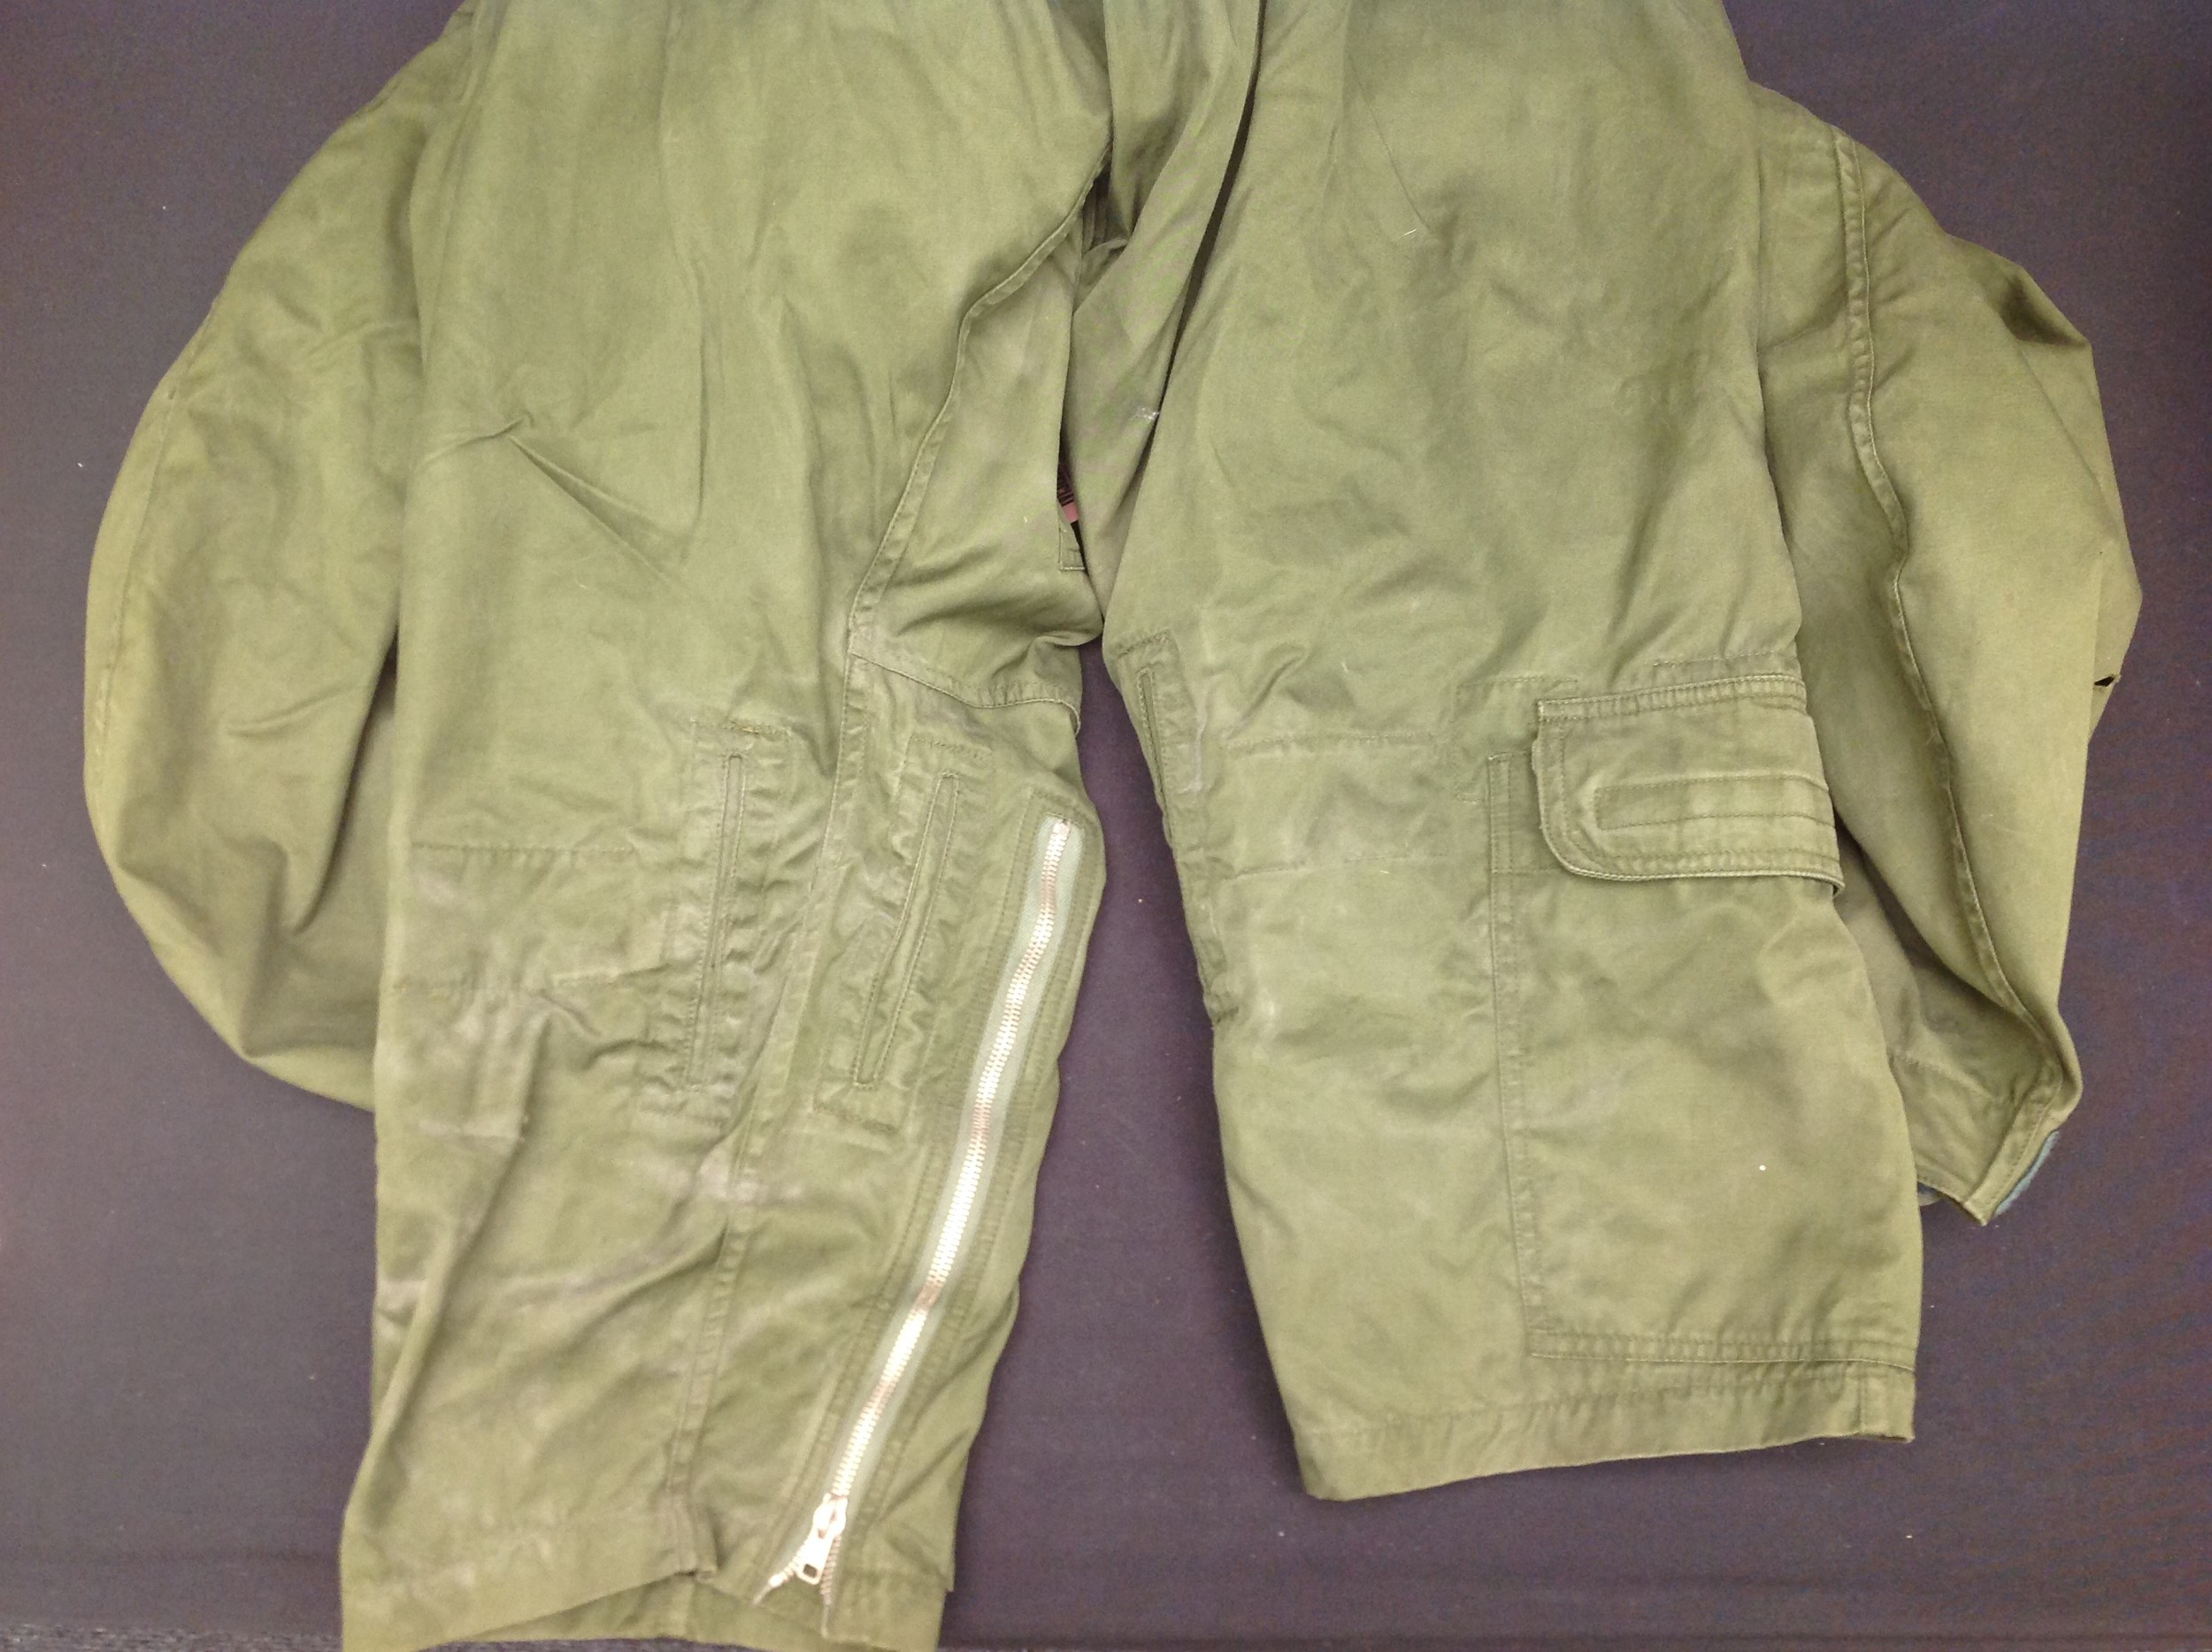 RAF Coverall, Flying MK 9, size 2. Complete with a 1985 map of the Low Countries in pocket and a - Image 8 of 8